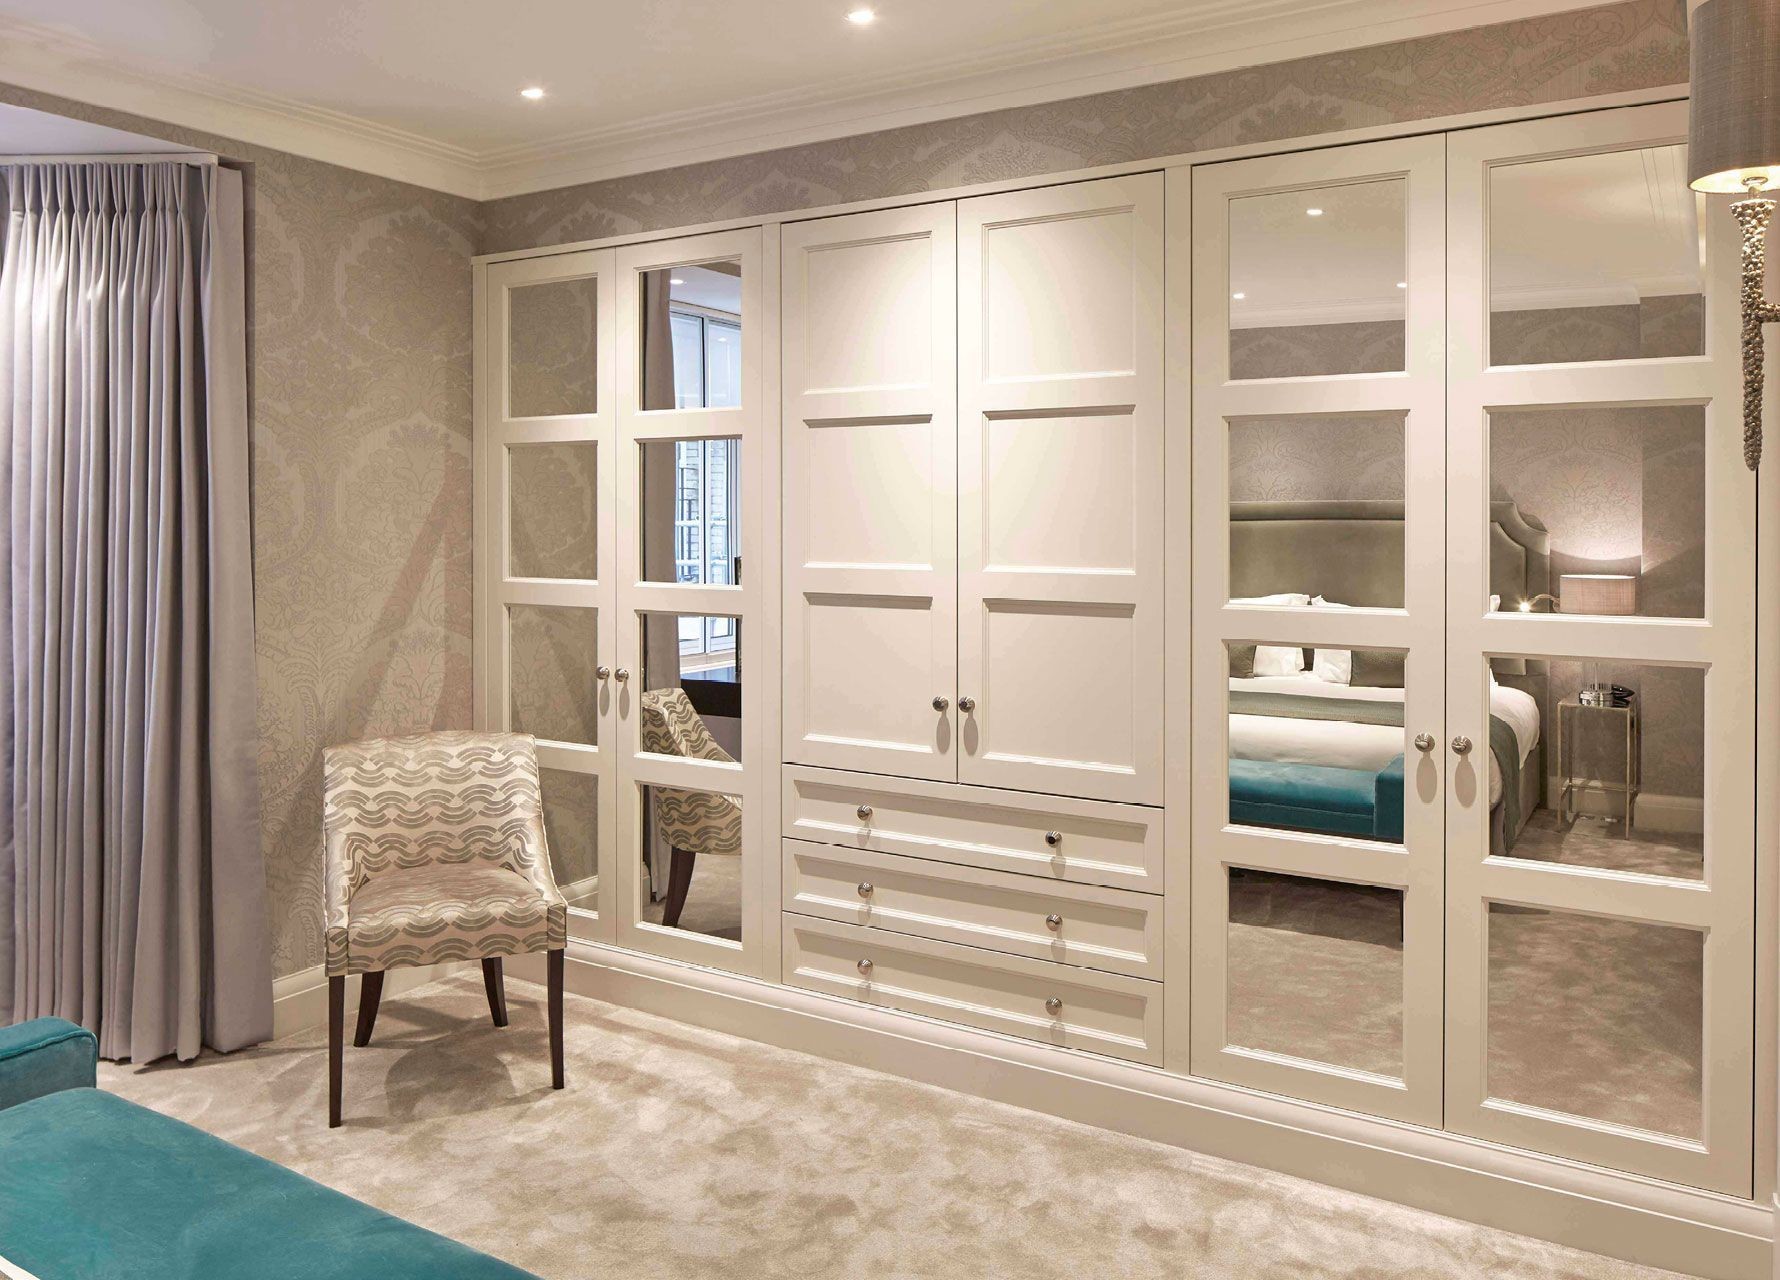 45 Wardrobe Design Ideas That you Can Try in your Home ~ Matchness.com